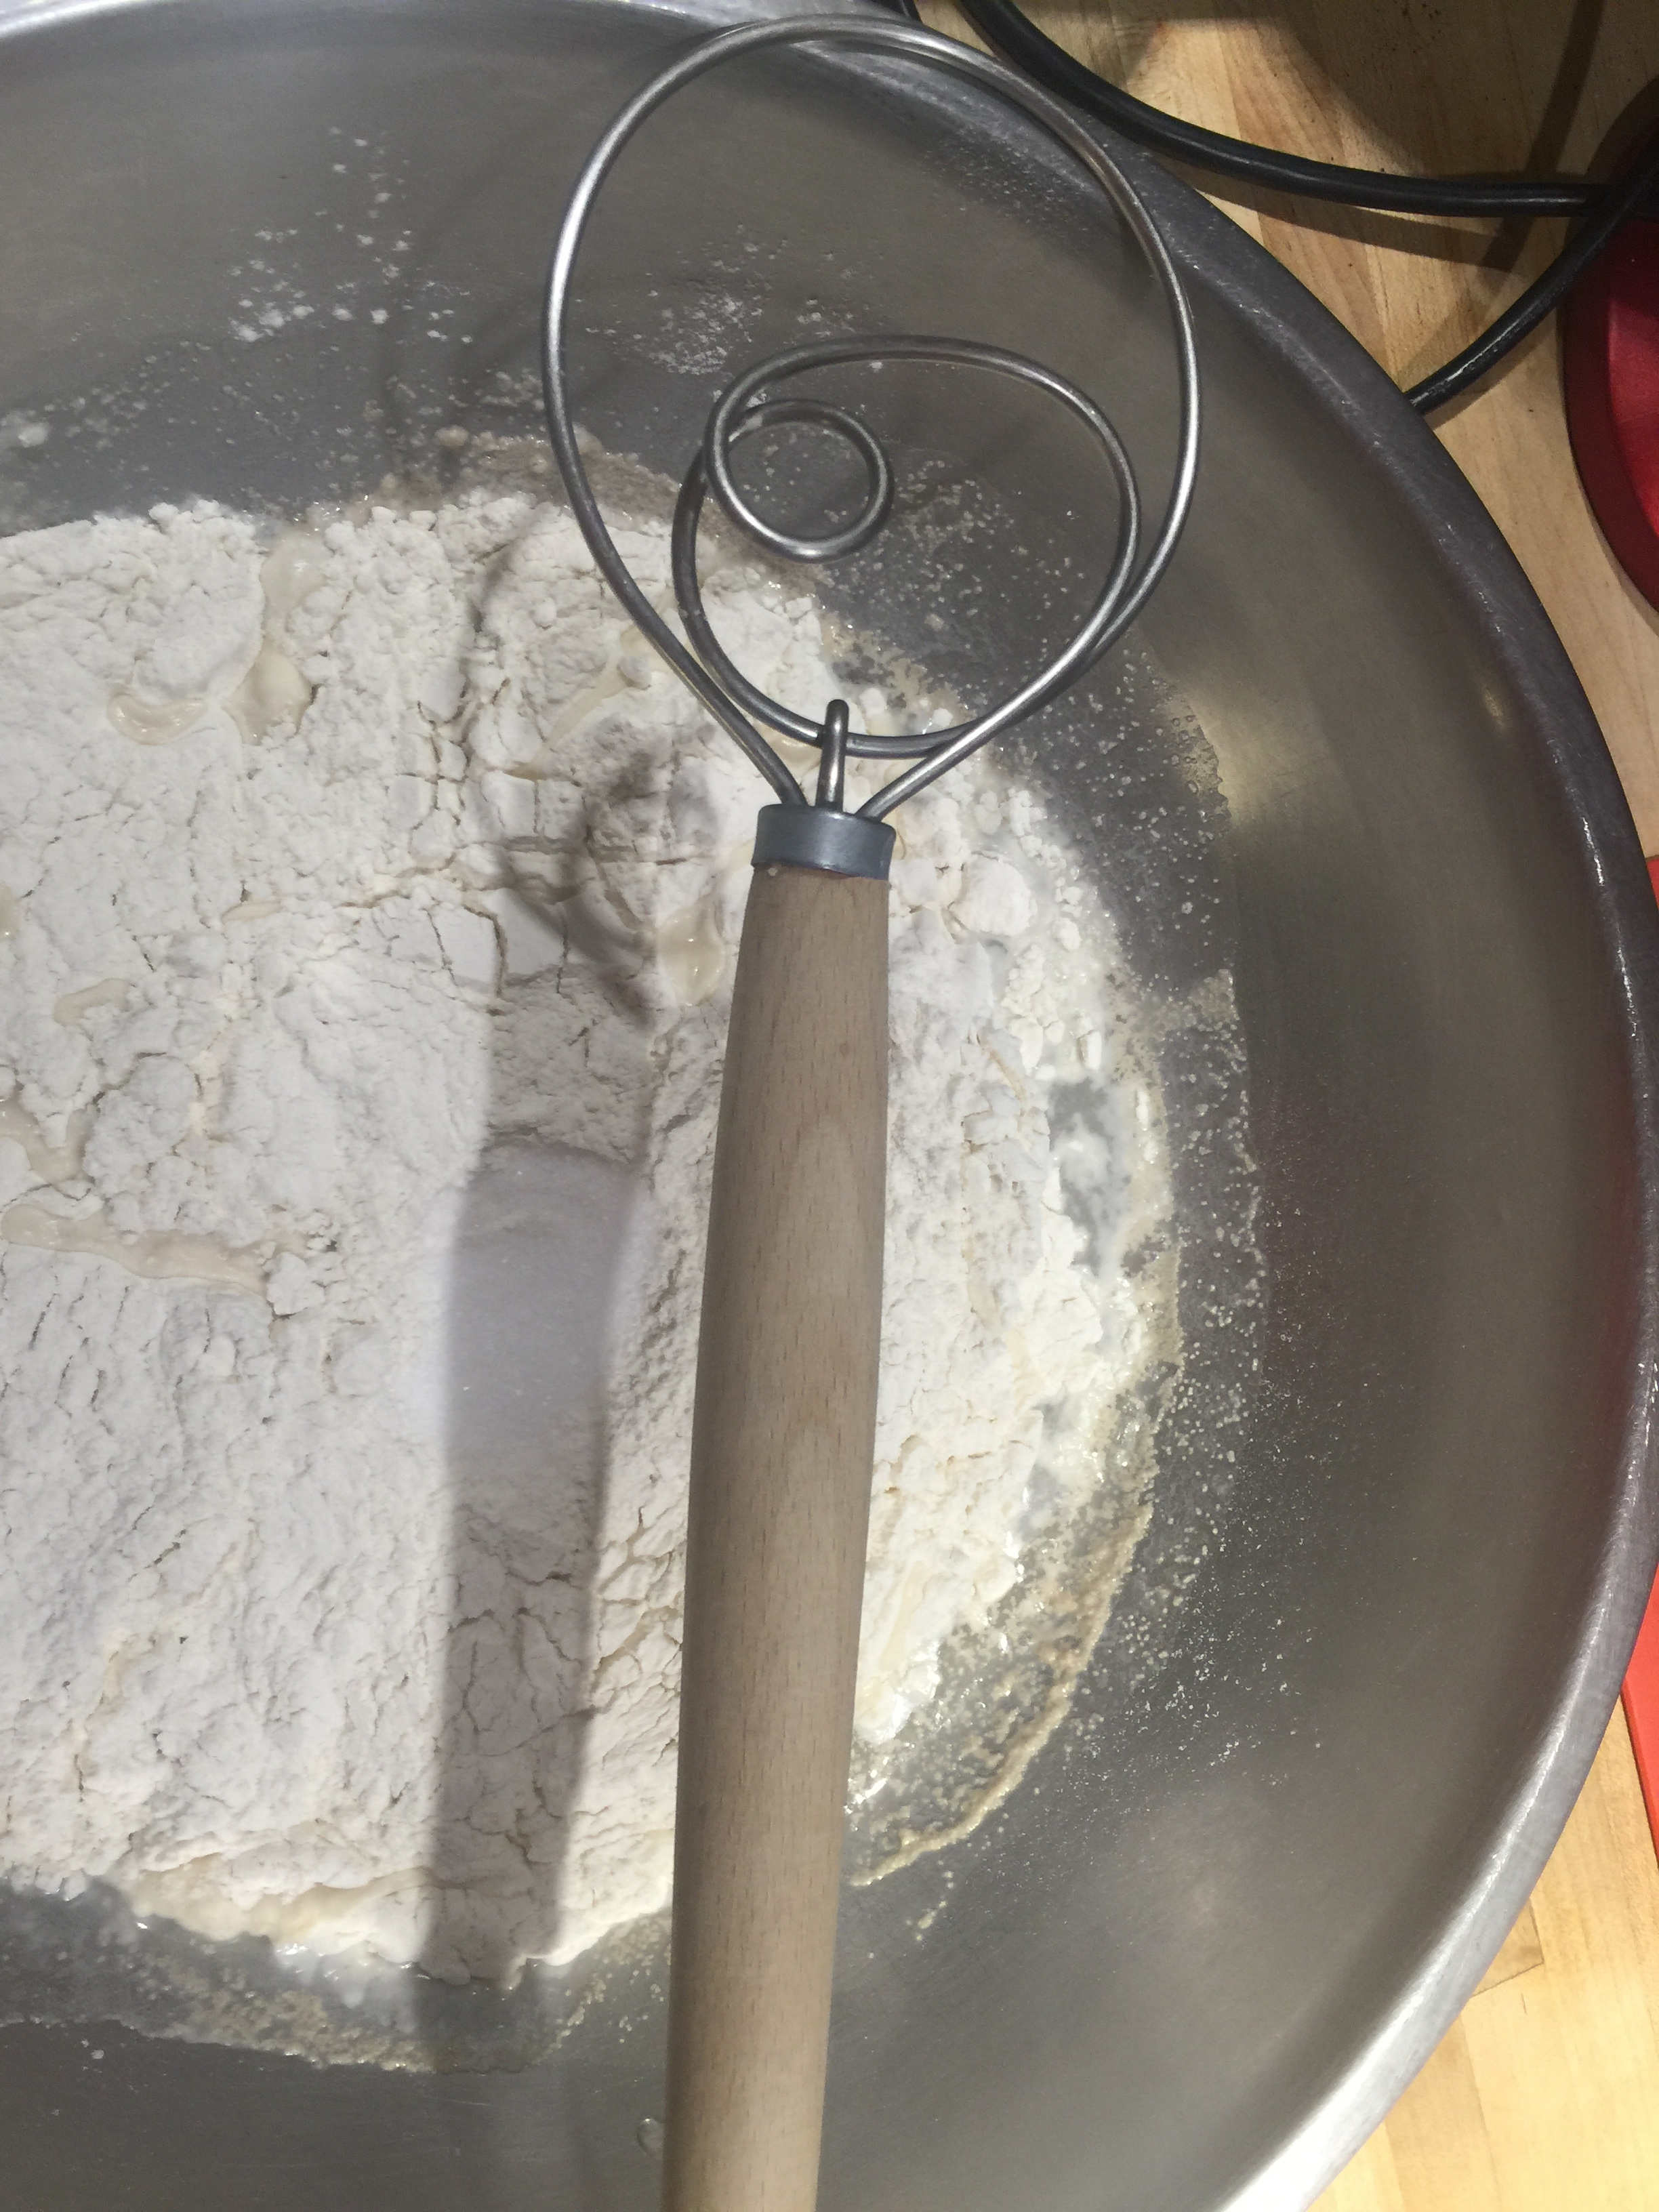 Right before mixing - salt is on top of the flour.